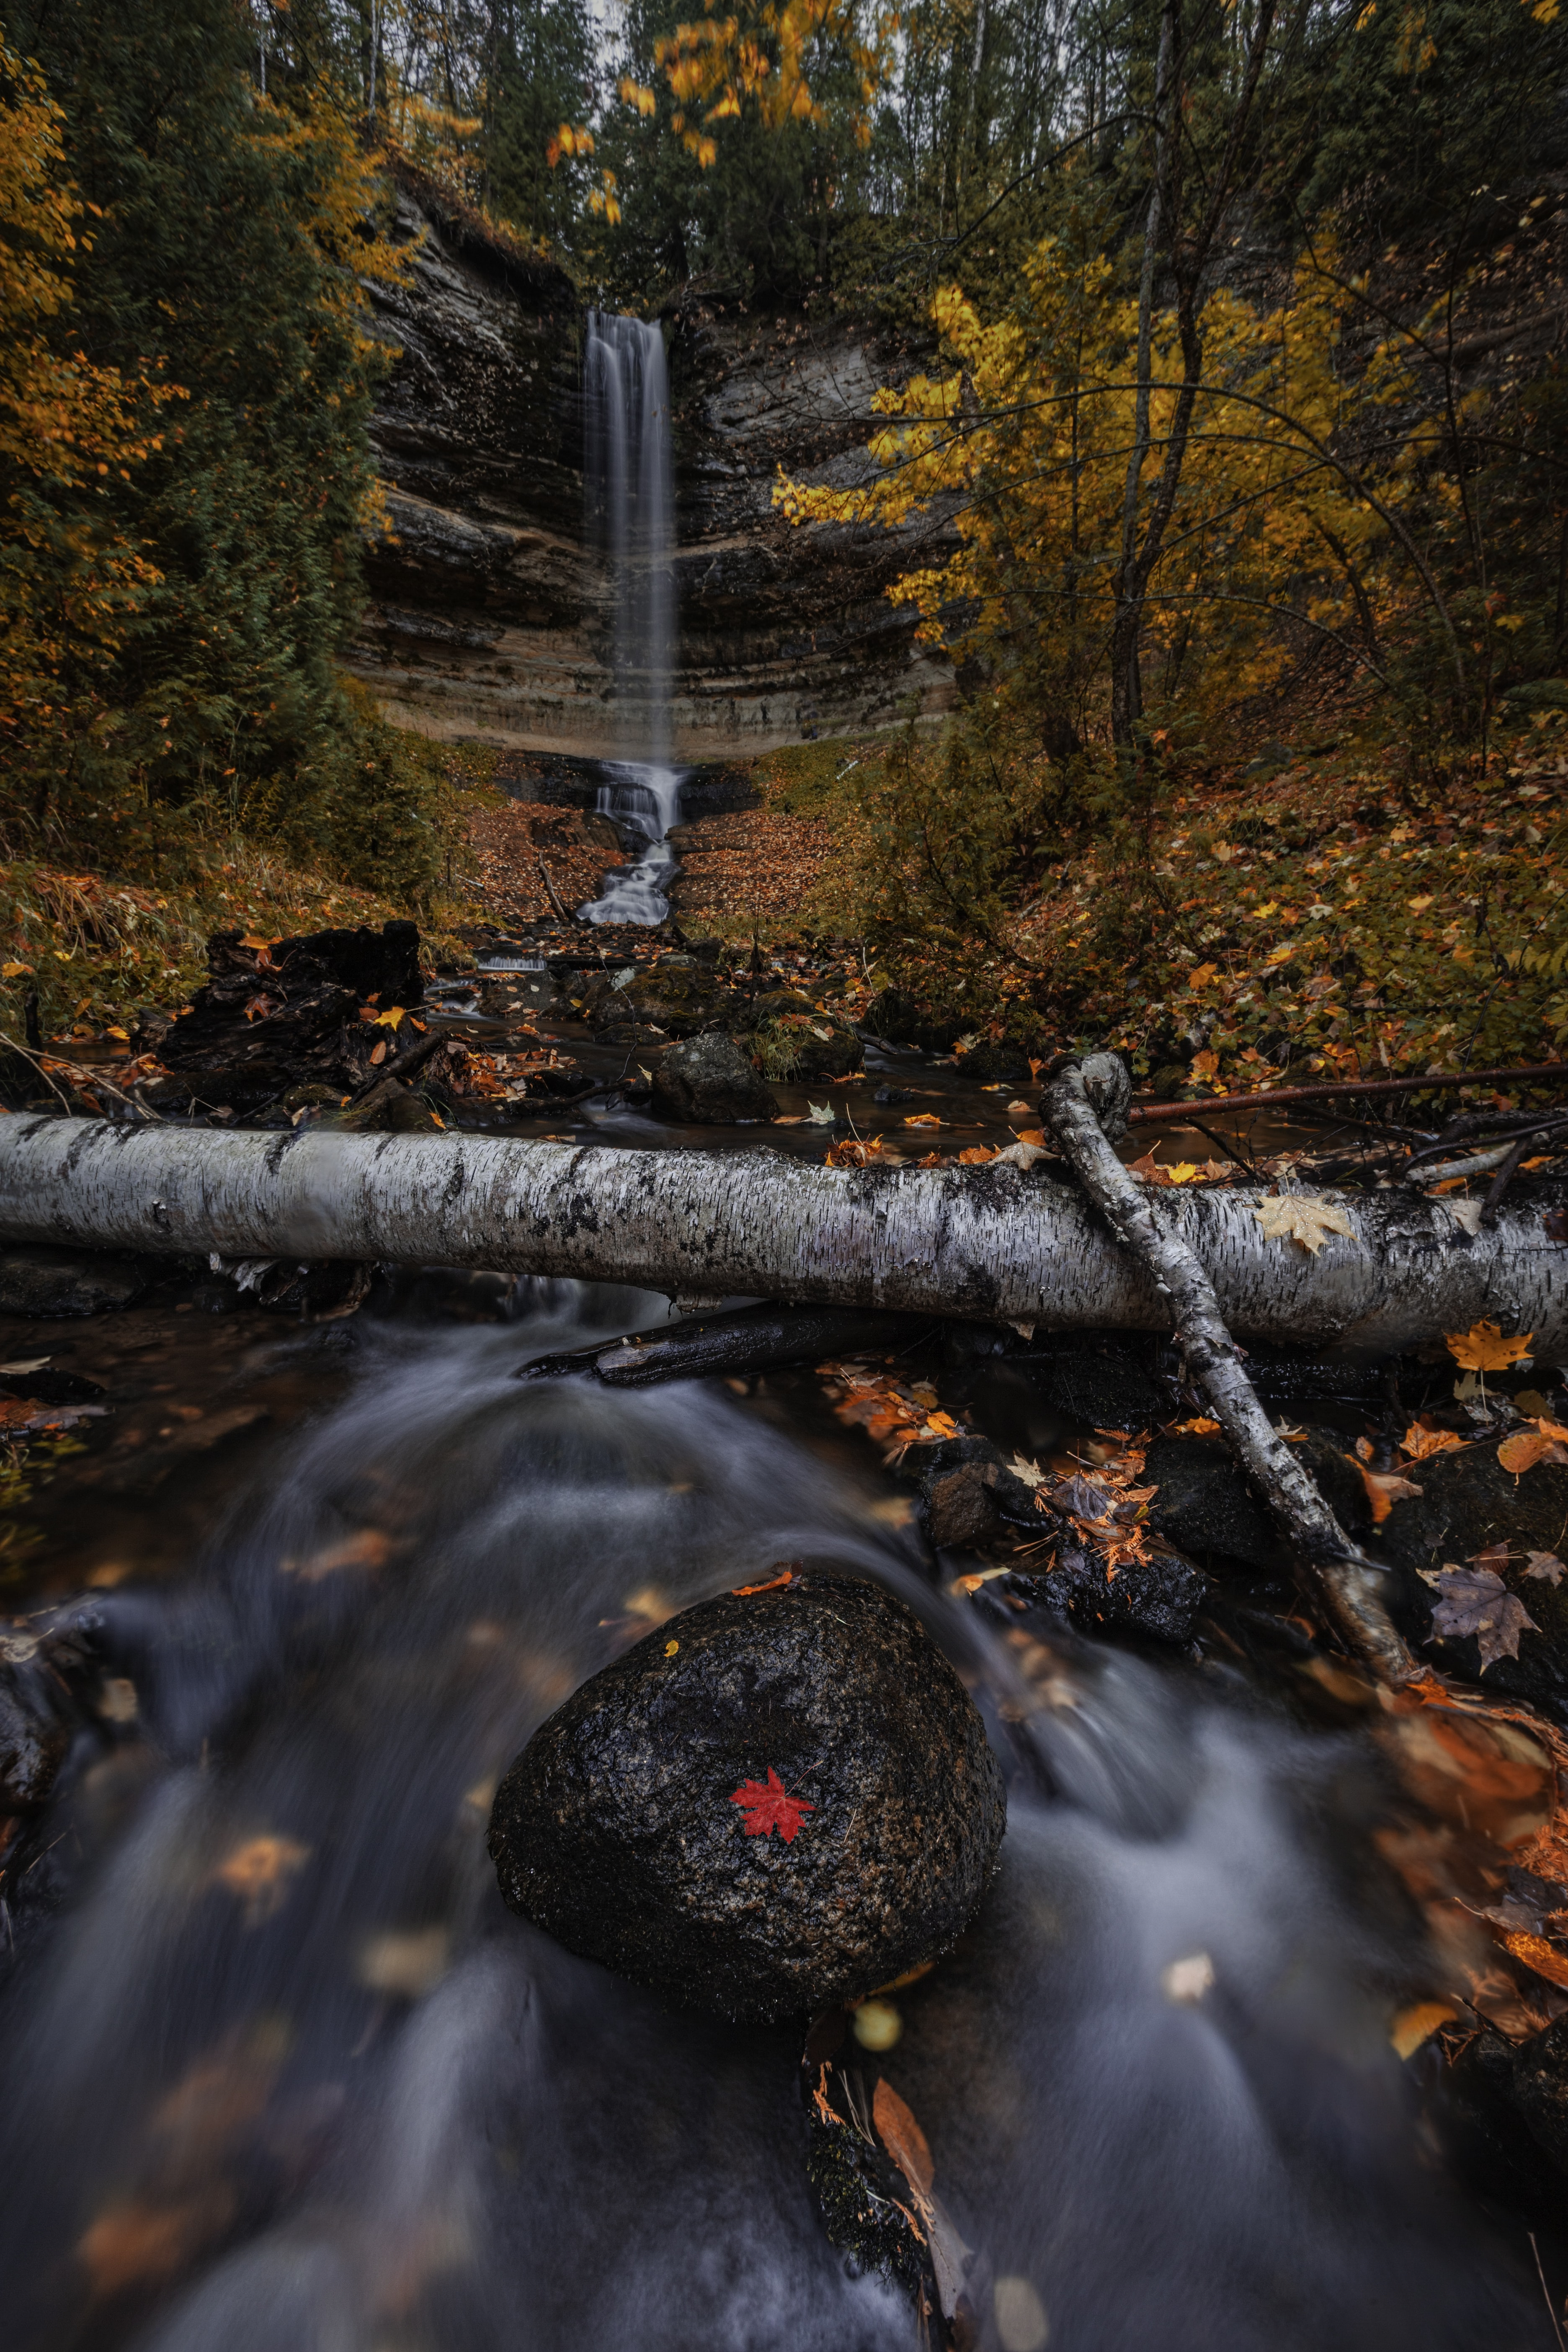 flowing river surrounded with withered leaves time-lapse photography